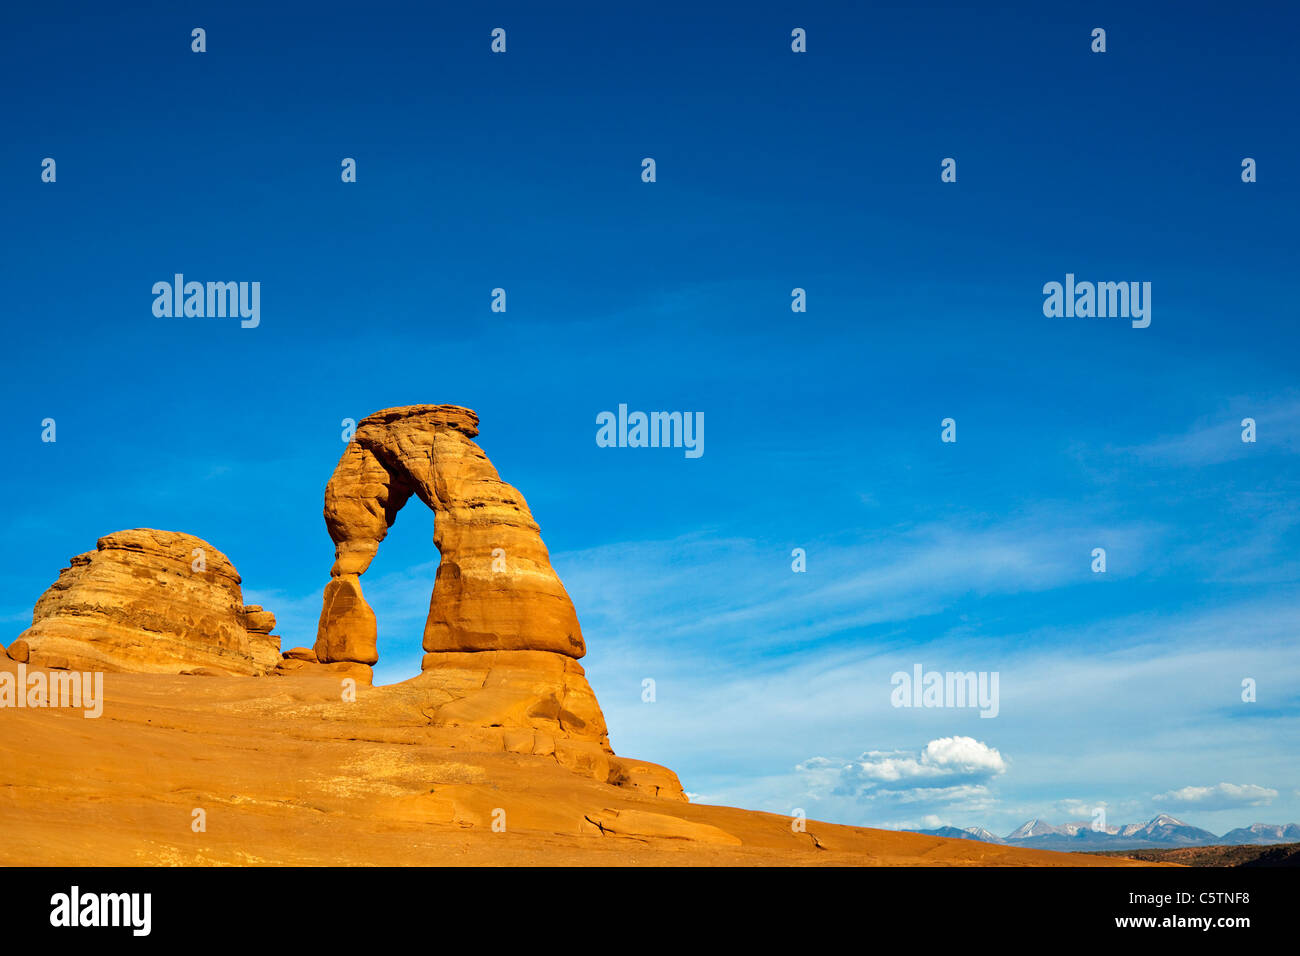 USA, Utah, Arches National Park, Delicate Arch - Stock Image